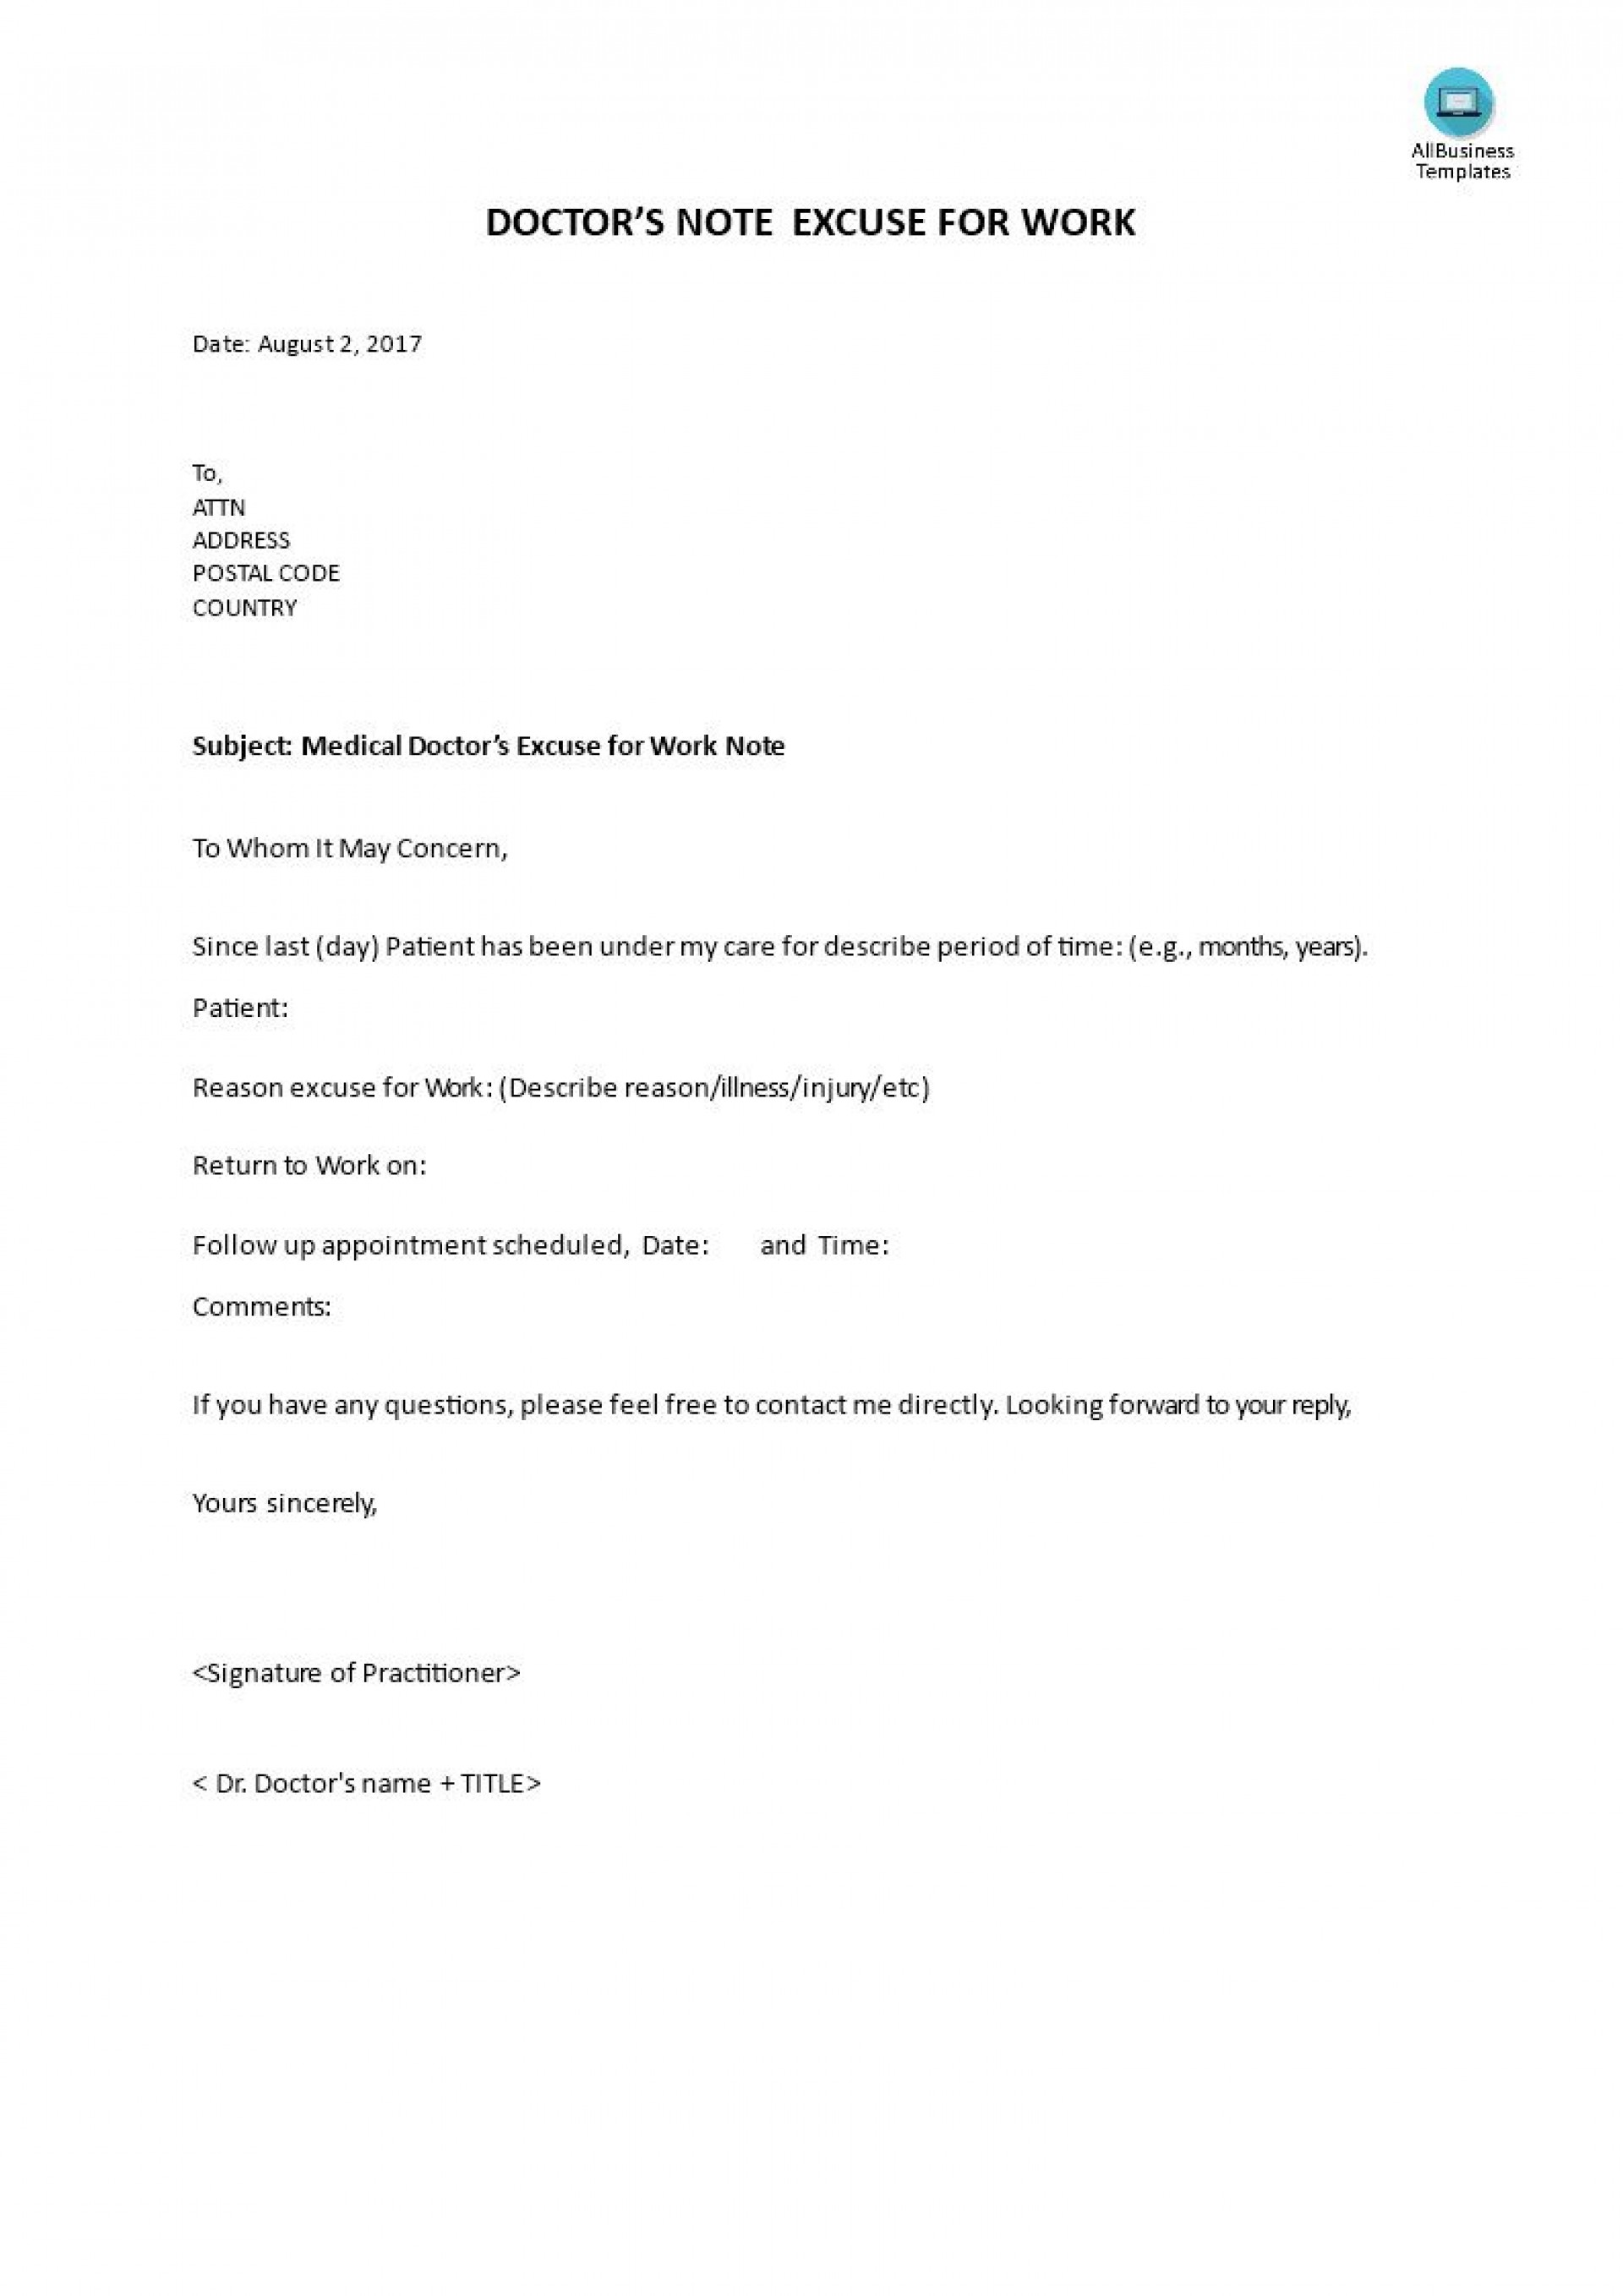 001 Shocking Doctor Note For Work Template High Definition  Doctor' Missing Excuse Pdf1920